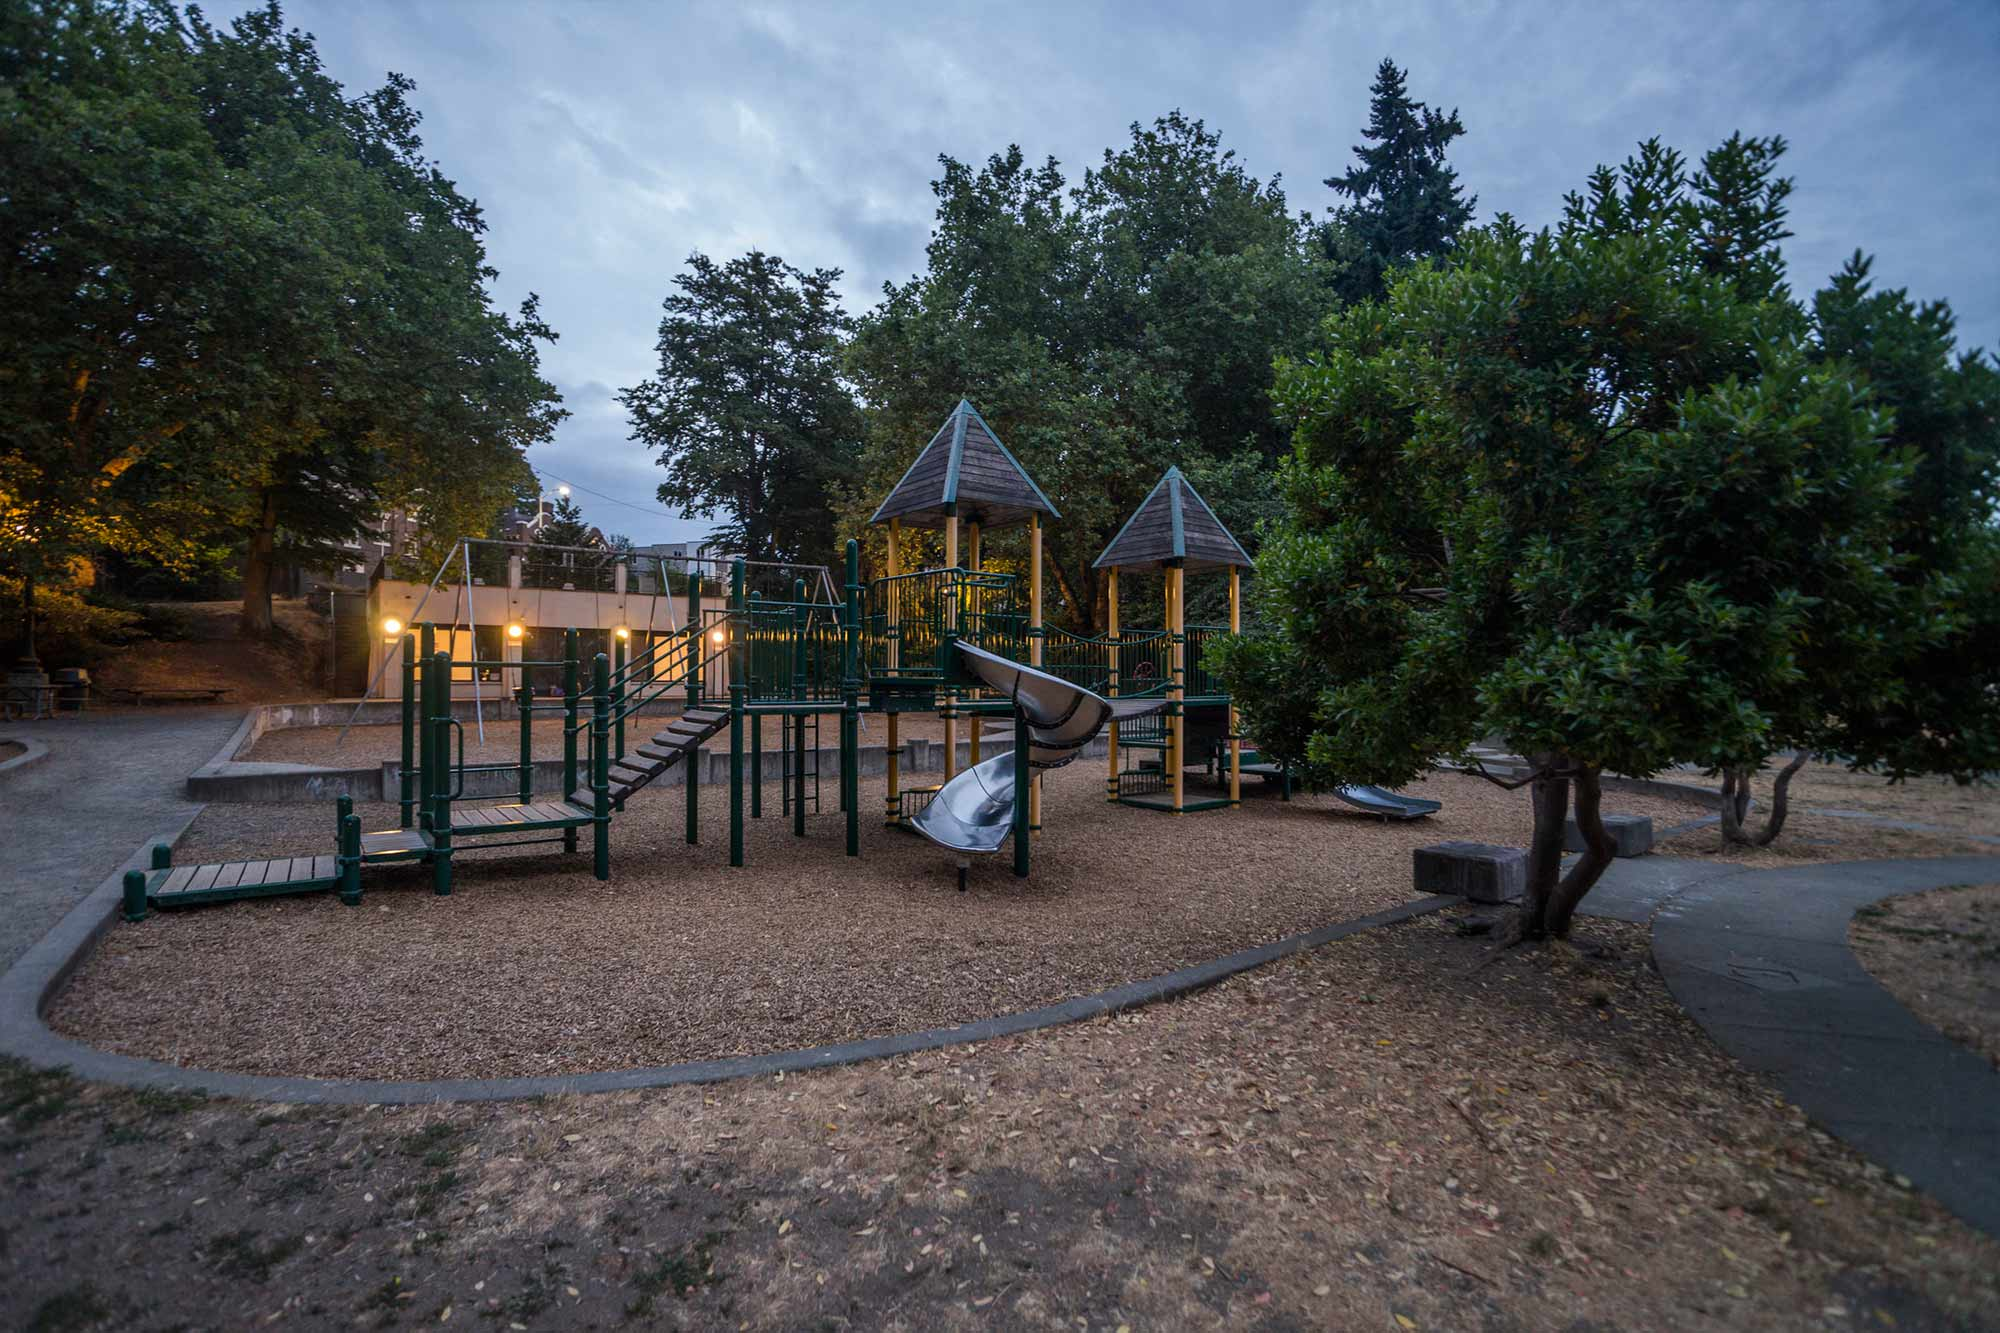 Cowen Park play structure